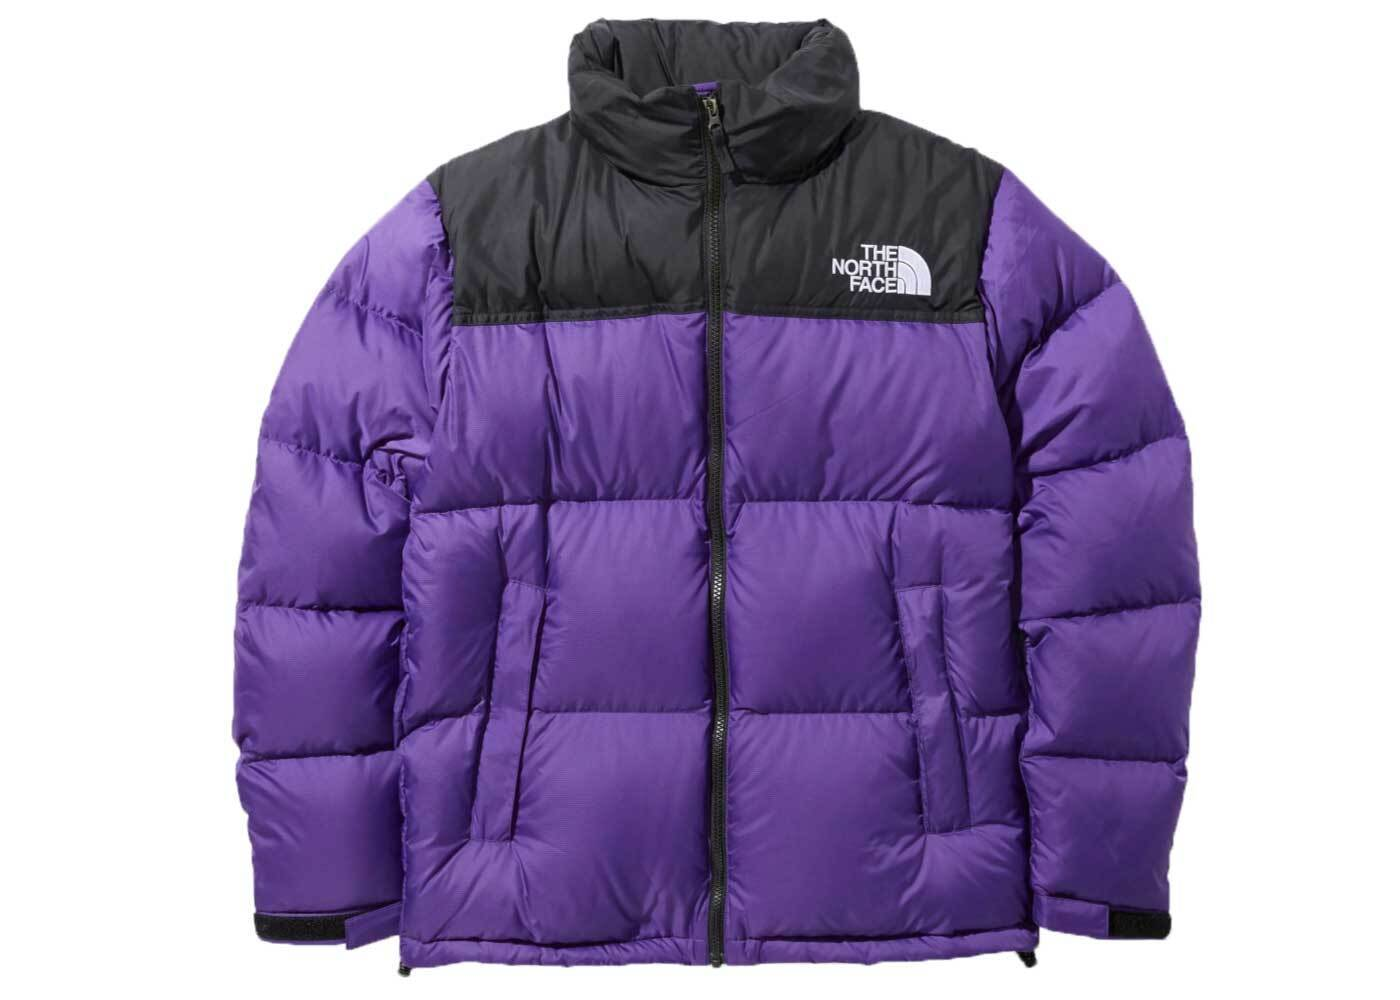 The North Face Nuptse Jacket PP (Japan)の写真